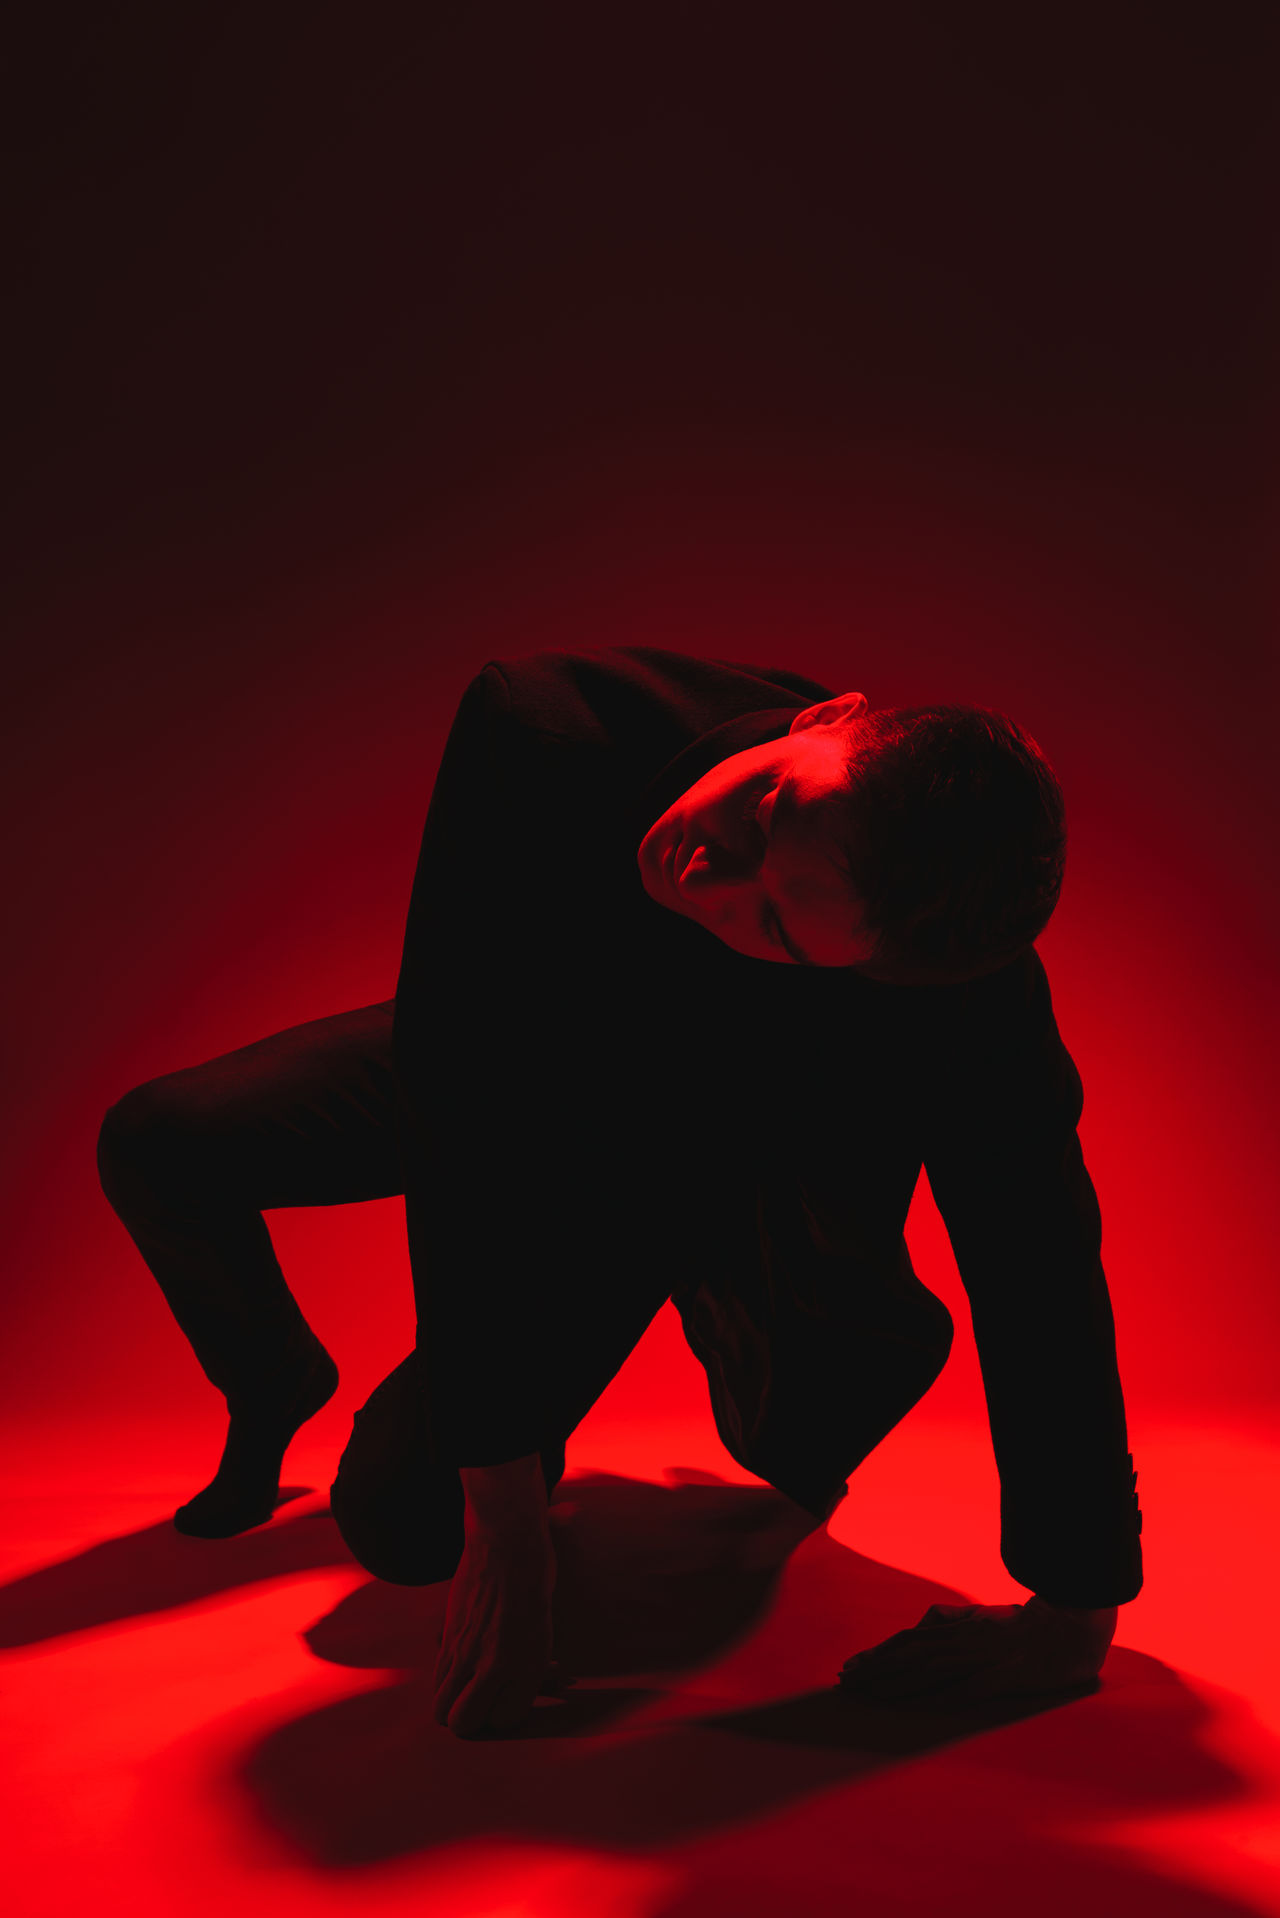 Man posing against red background